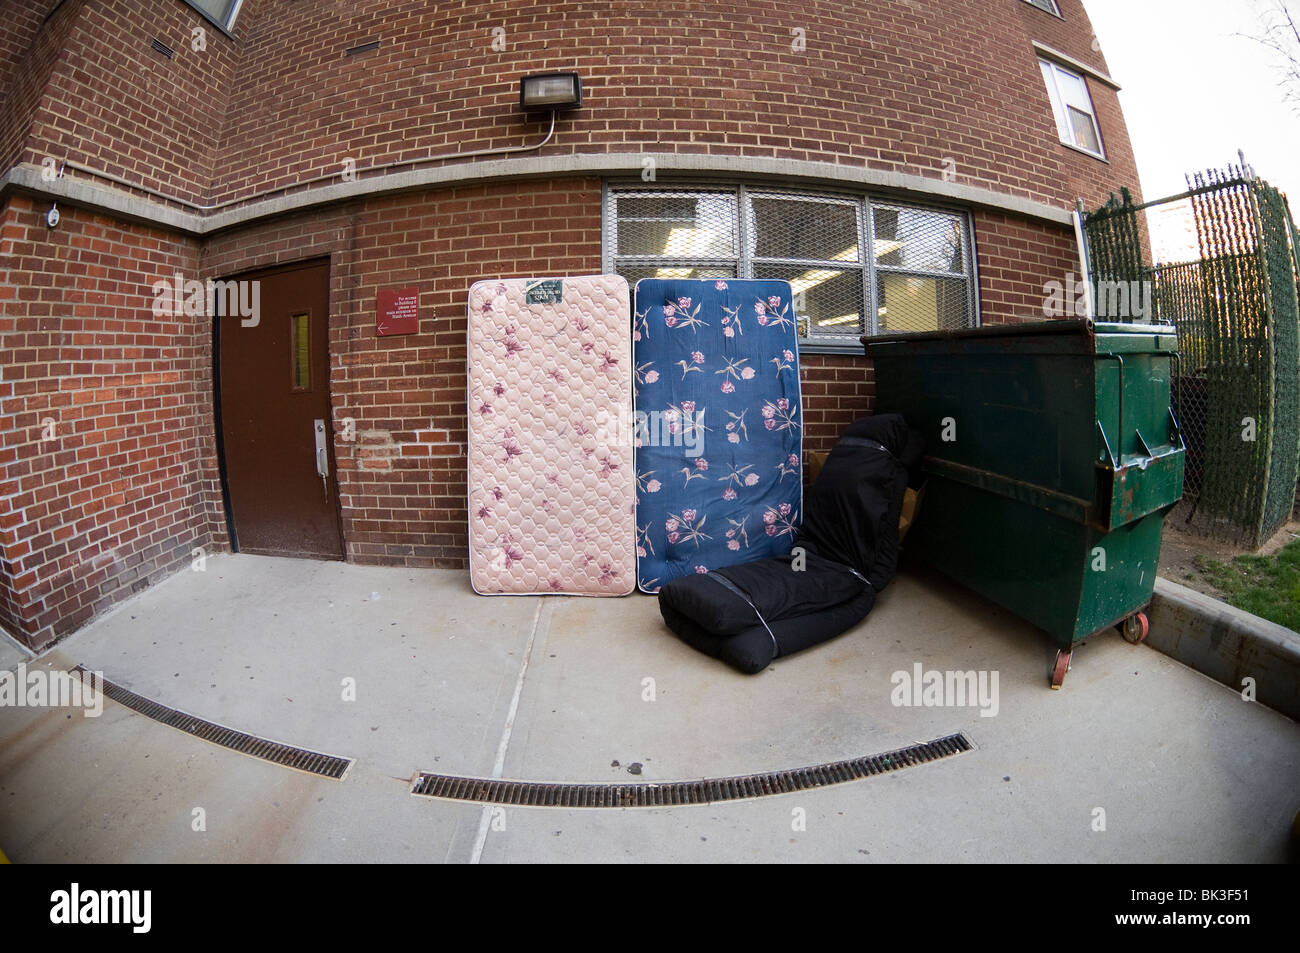 Mattresses wait for bulk pick-up in the trash area of an apartment building in New York - Stock Image